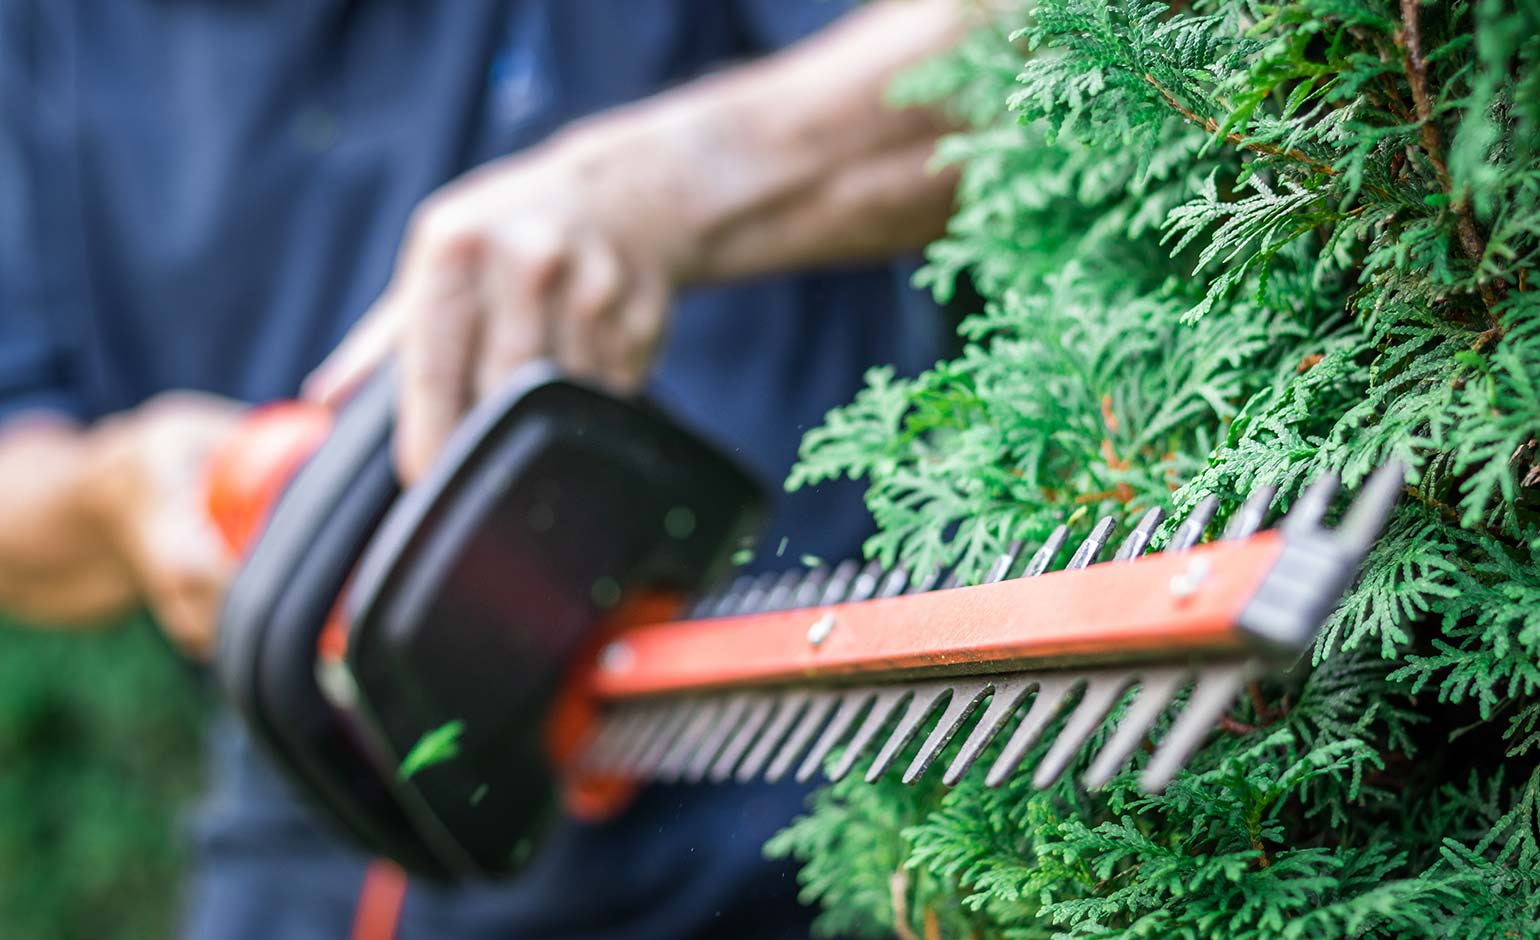 Council asks residents to keep hedges trimmed to help social distancing